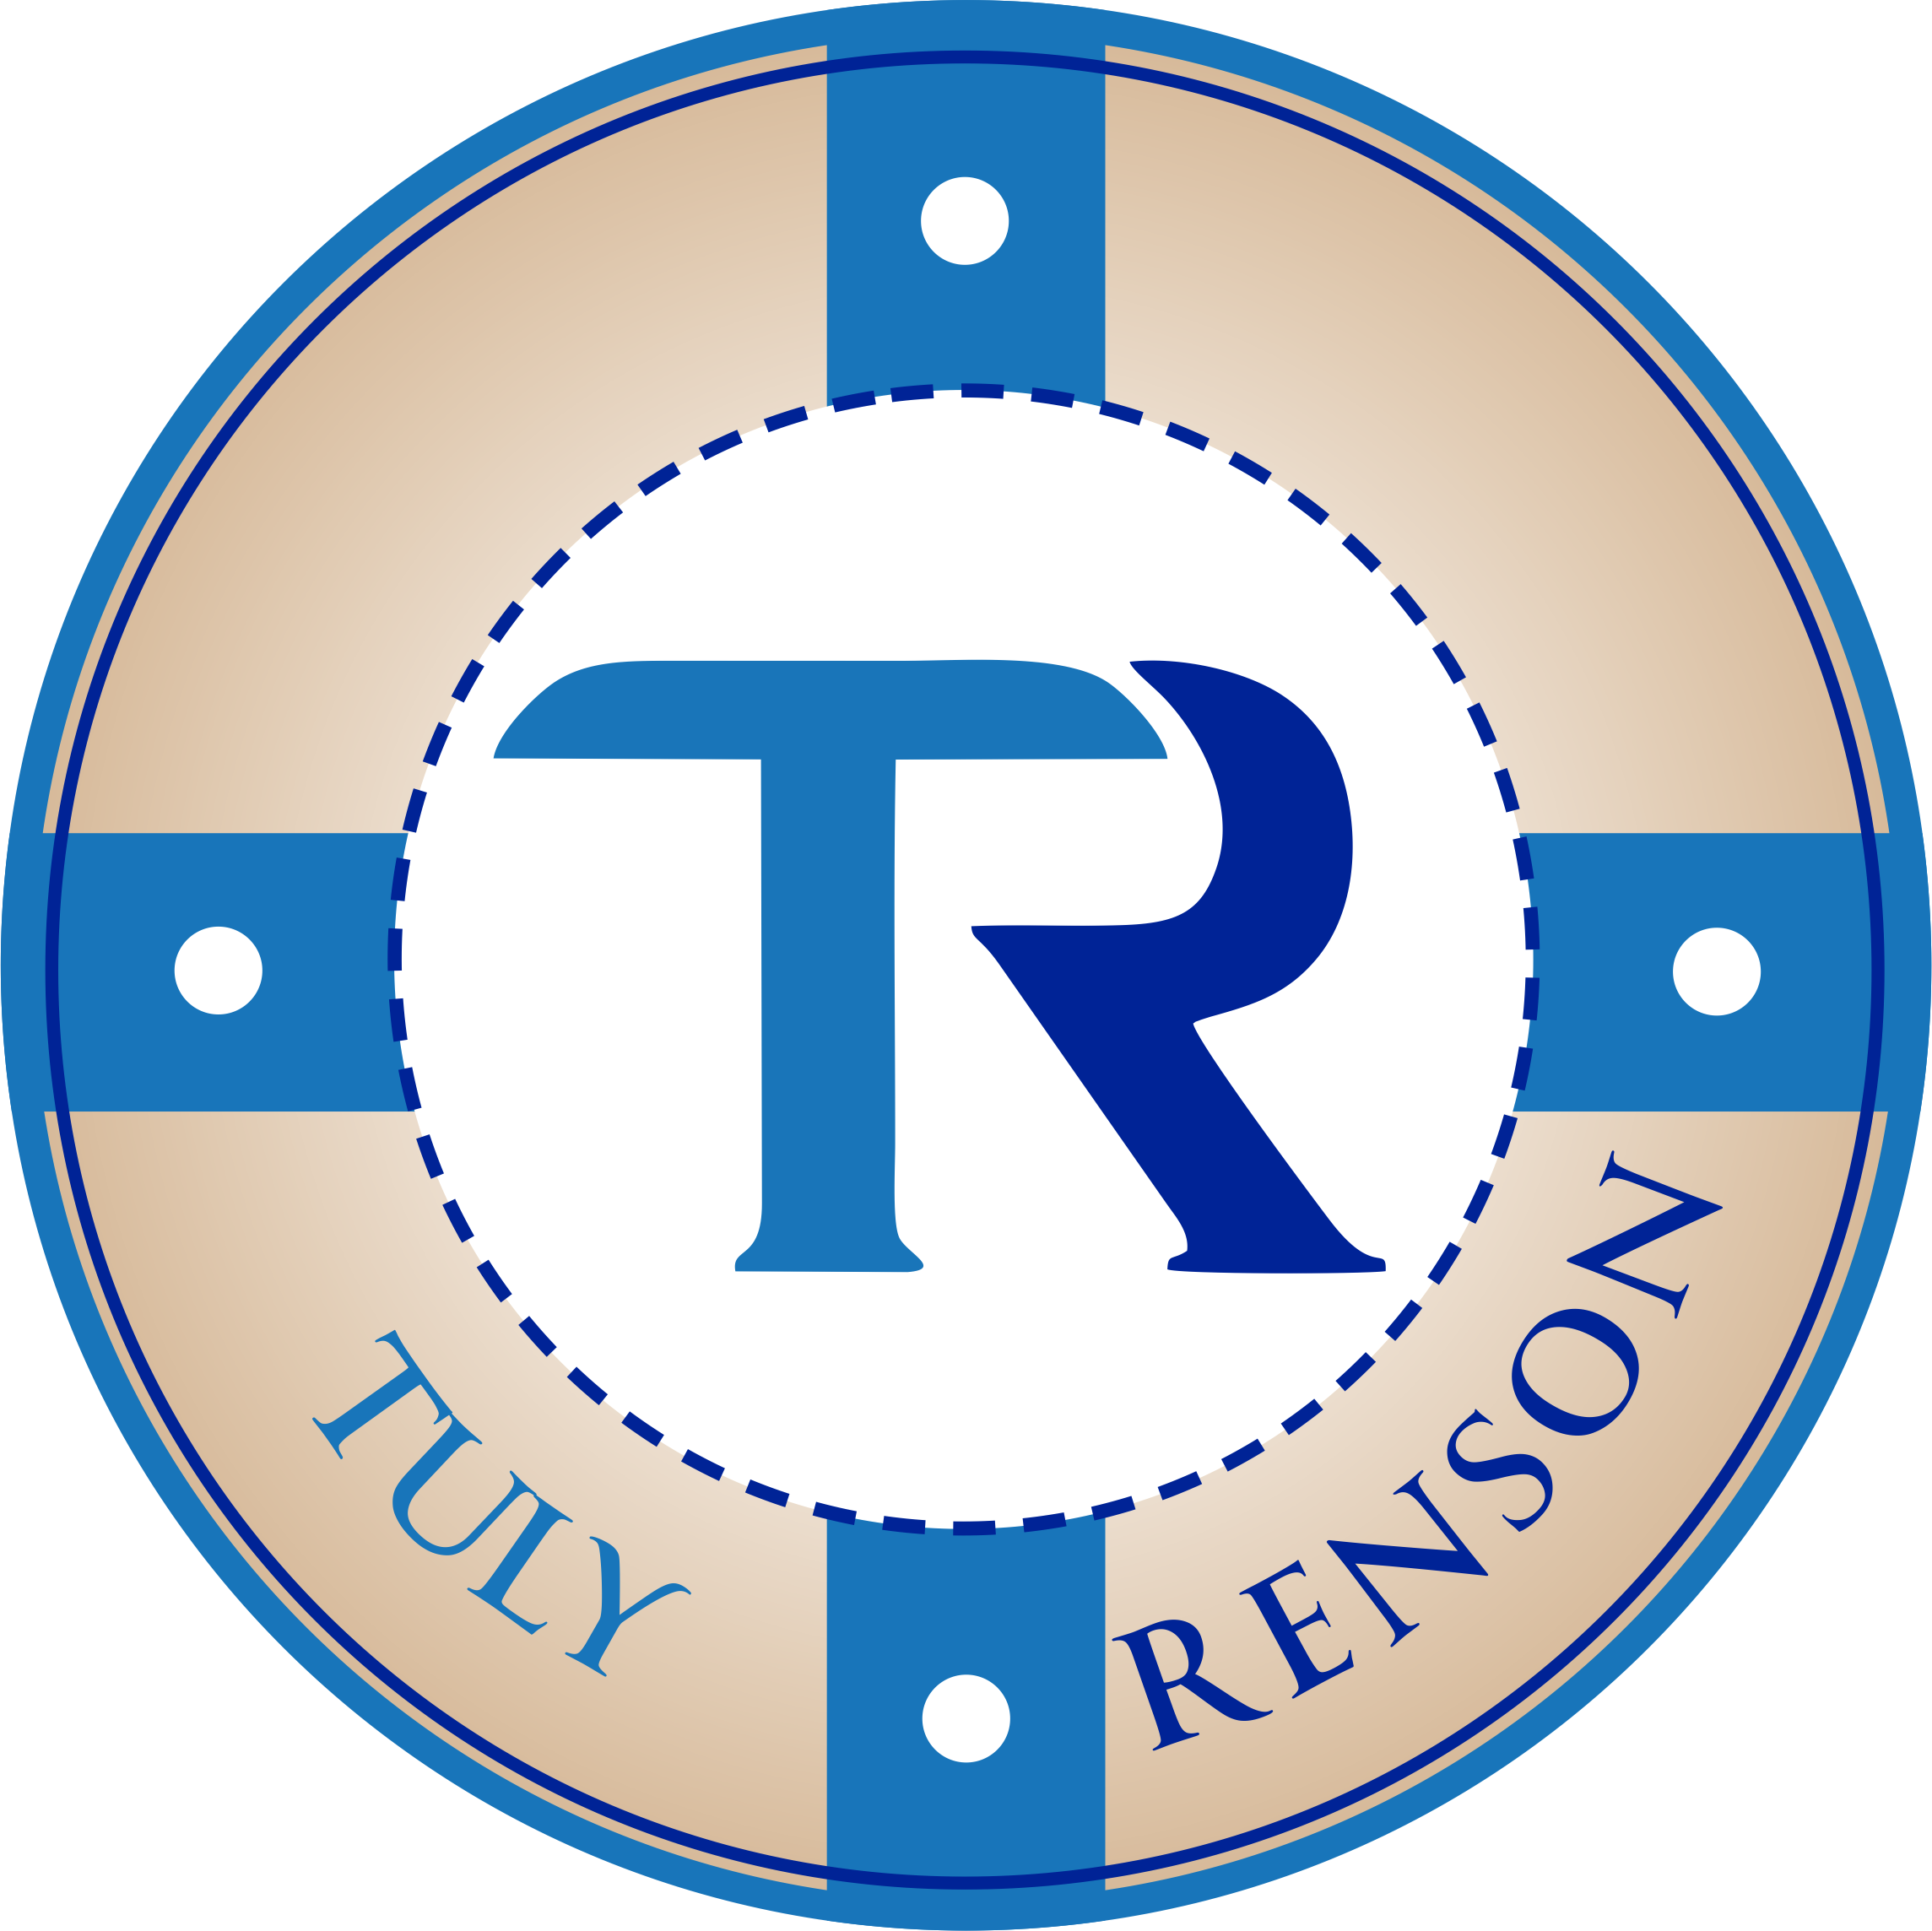 Tuly renson